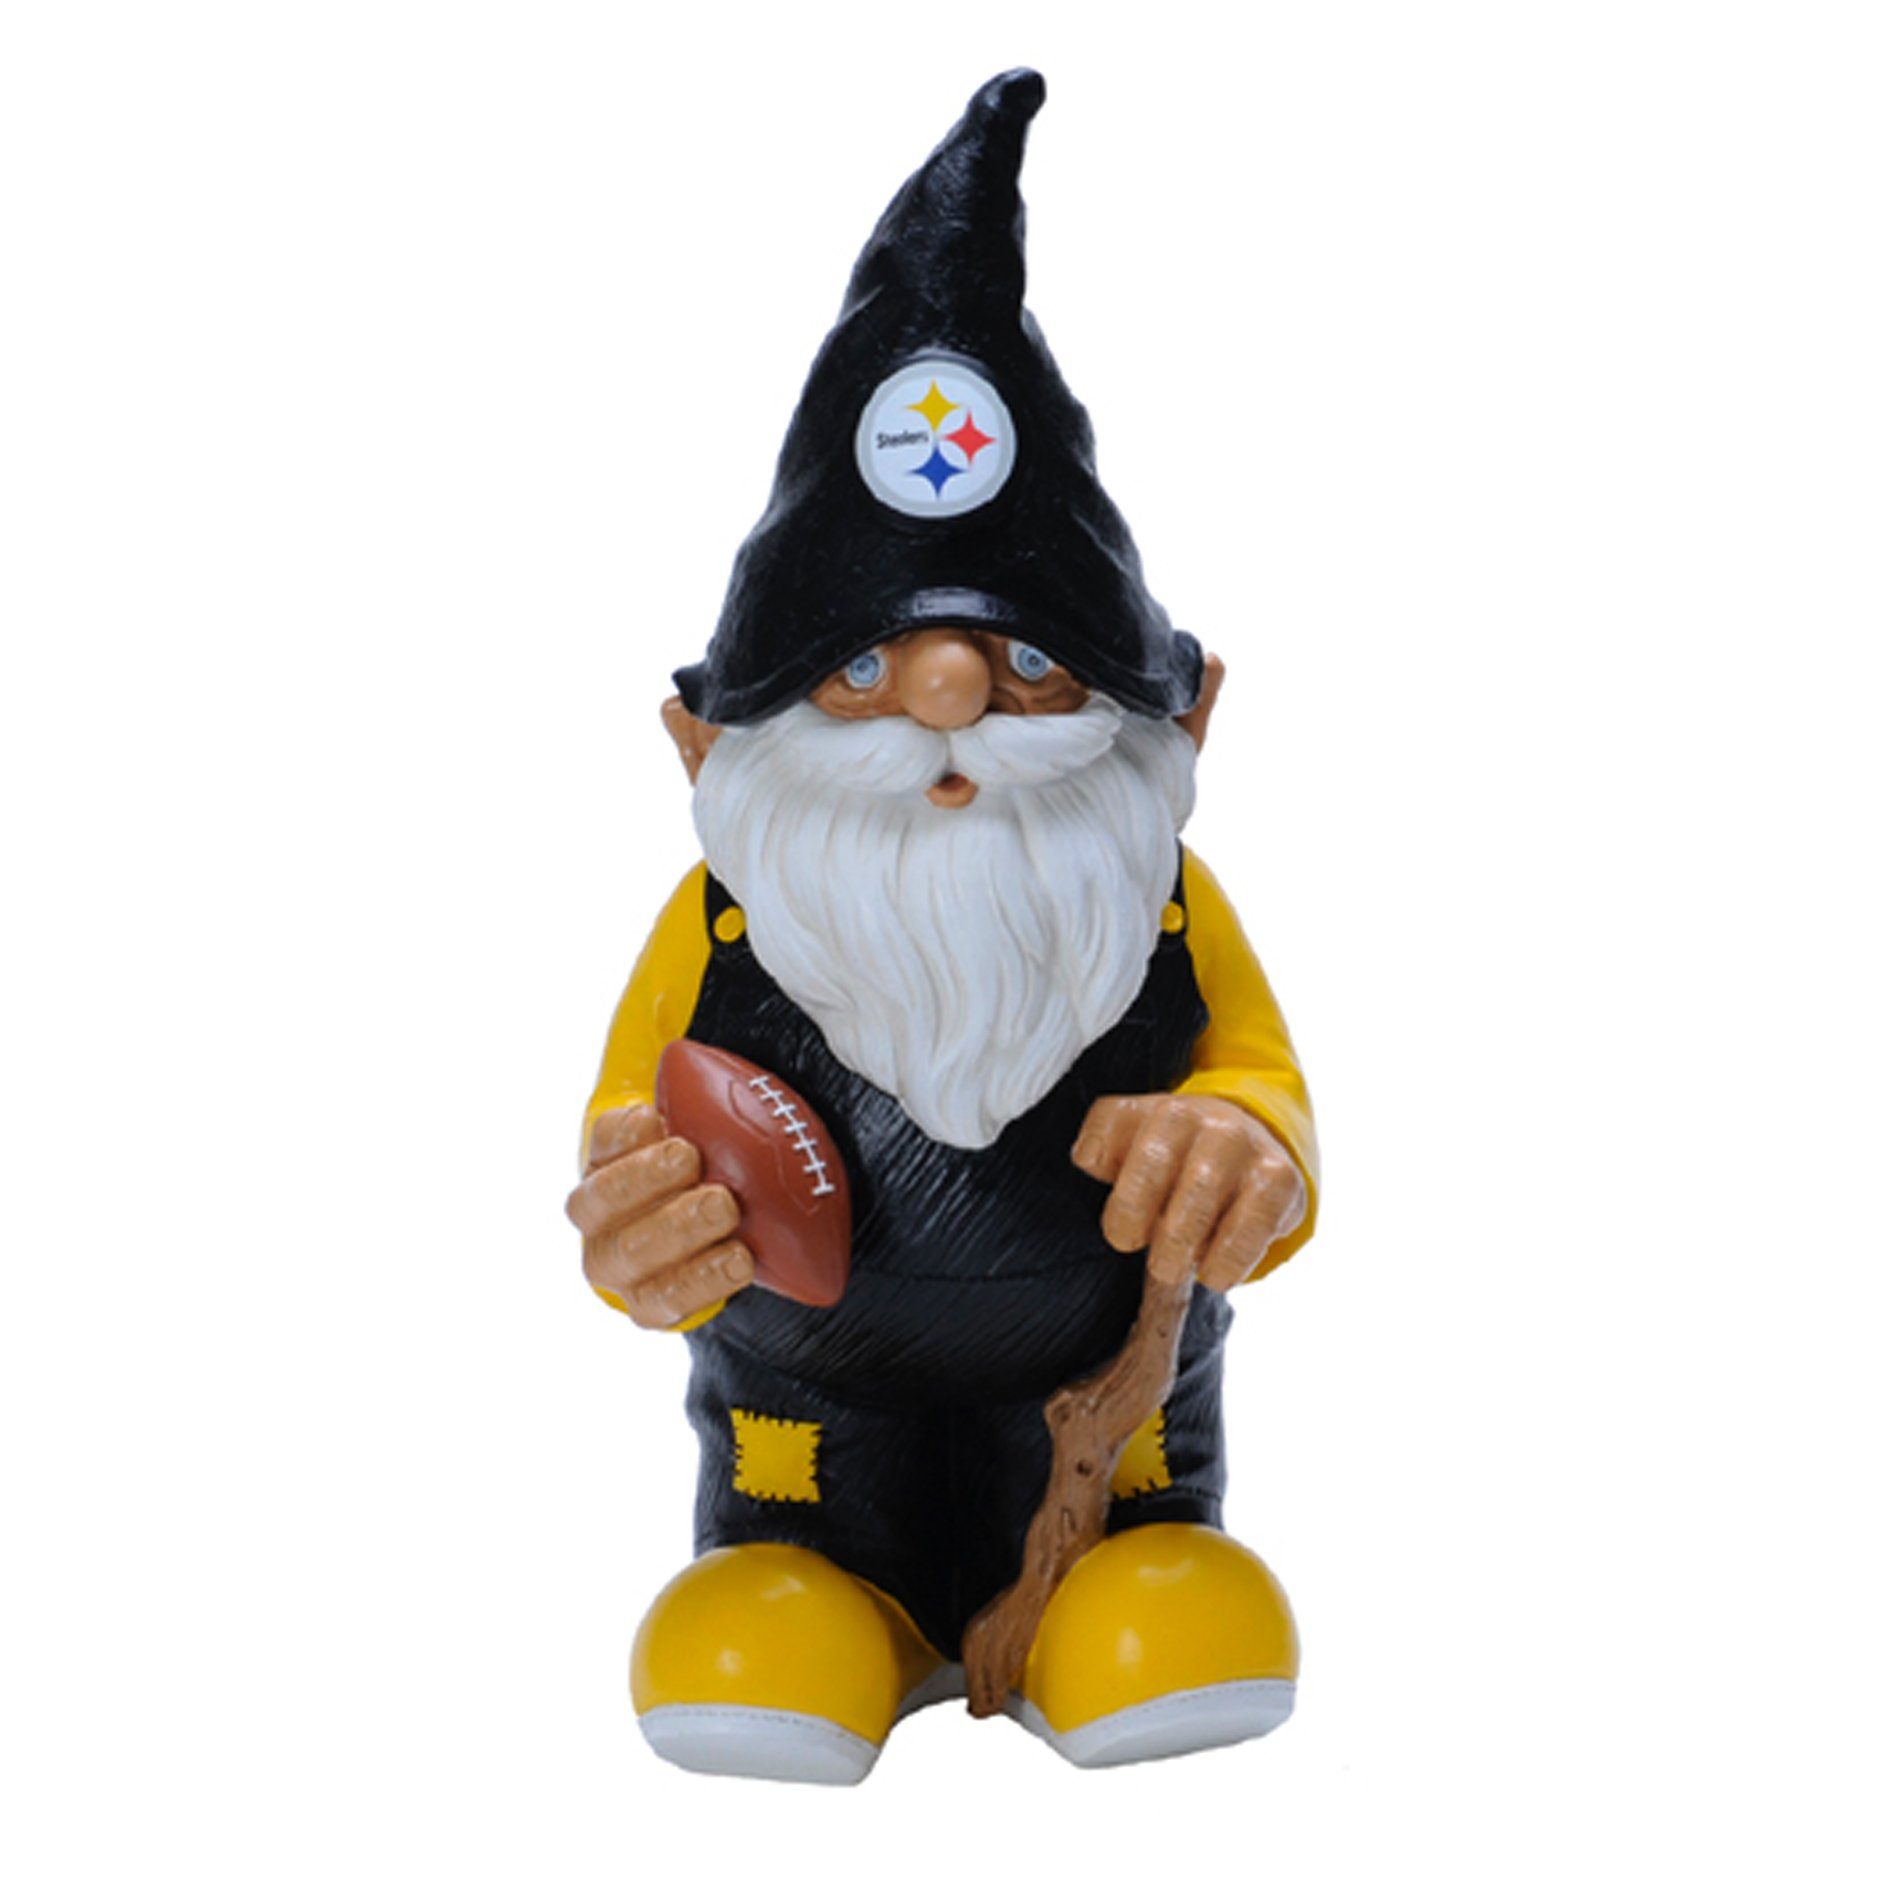 FOCO Pittsburgh Steelers 2008 Team Gnome